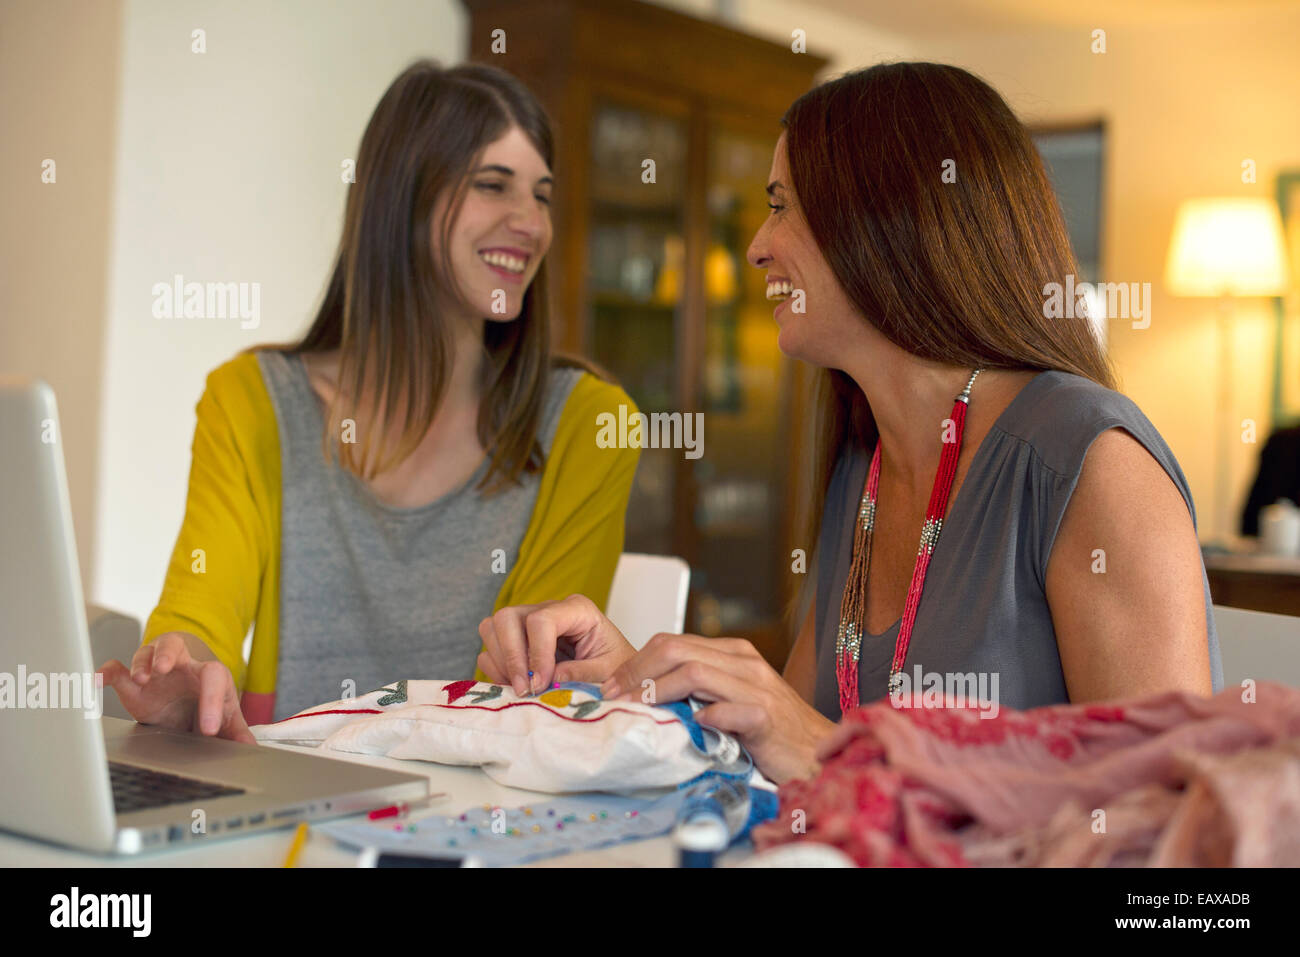 Friends doing embroidery together - Stock Image